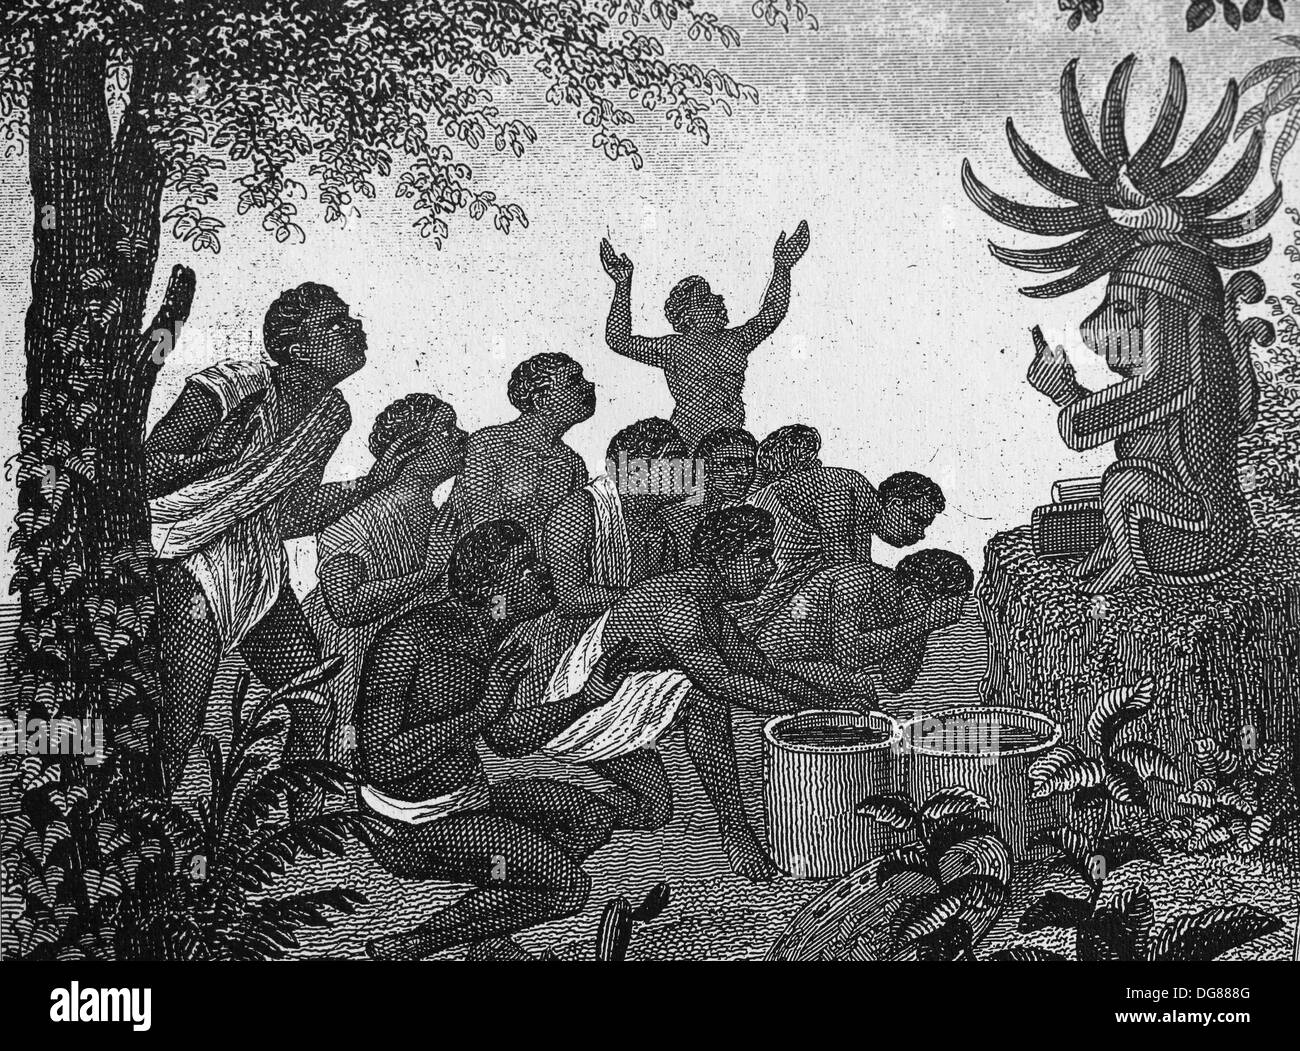 Religion. Idolatry in the Central Africa. Cult image. Engraving - Stock Image